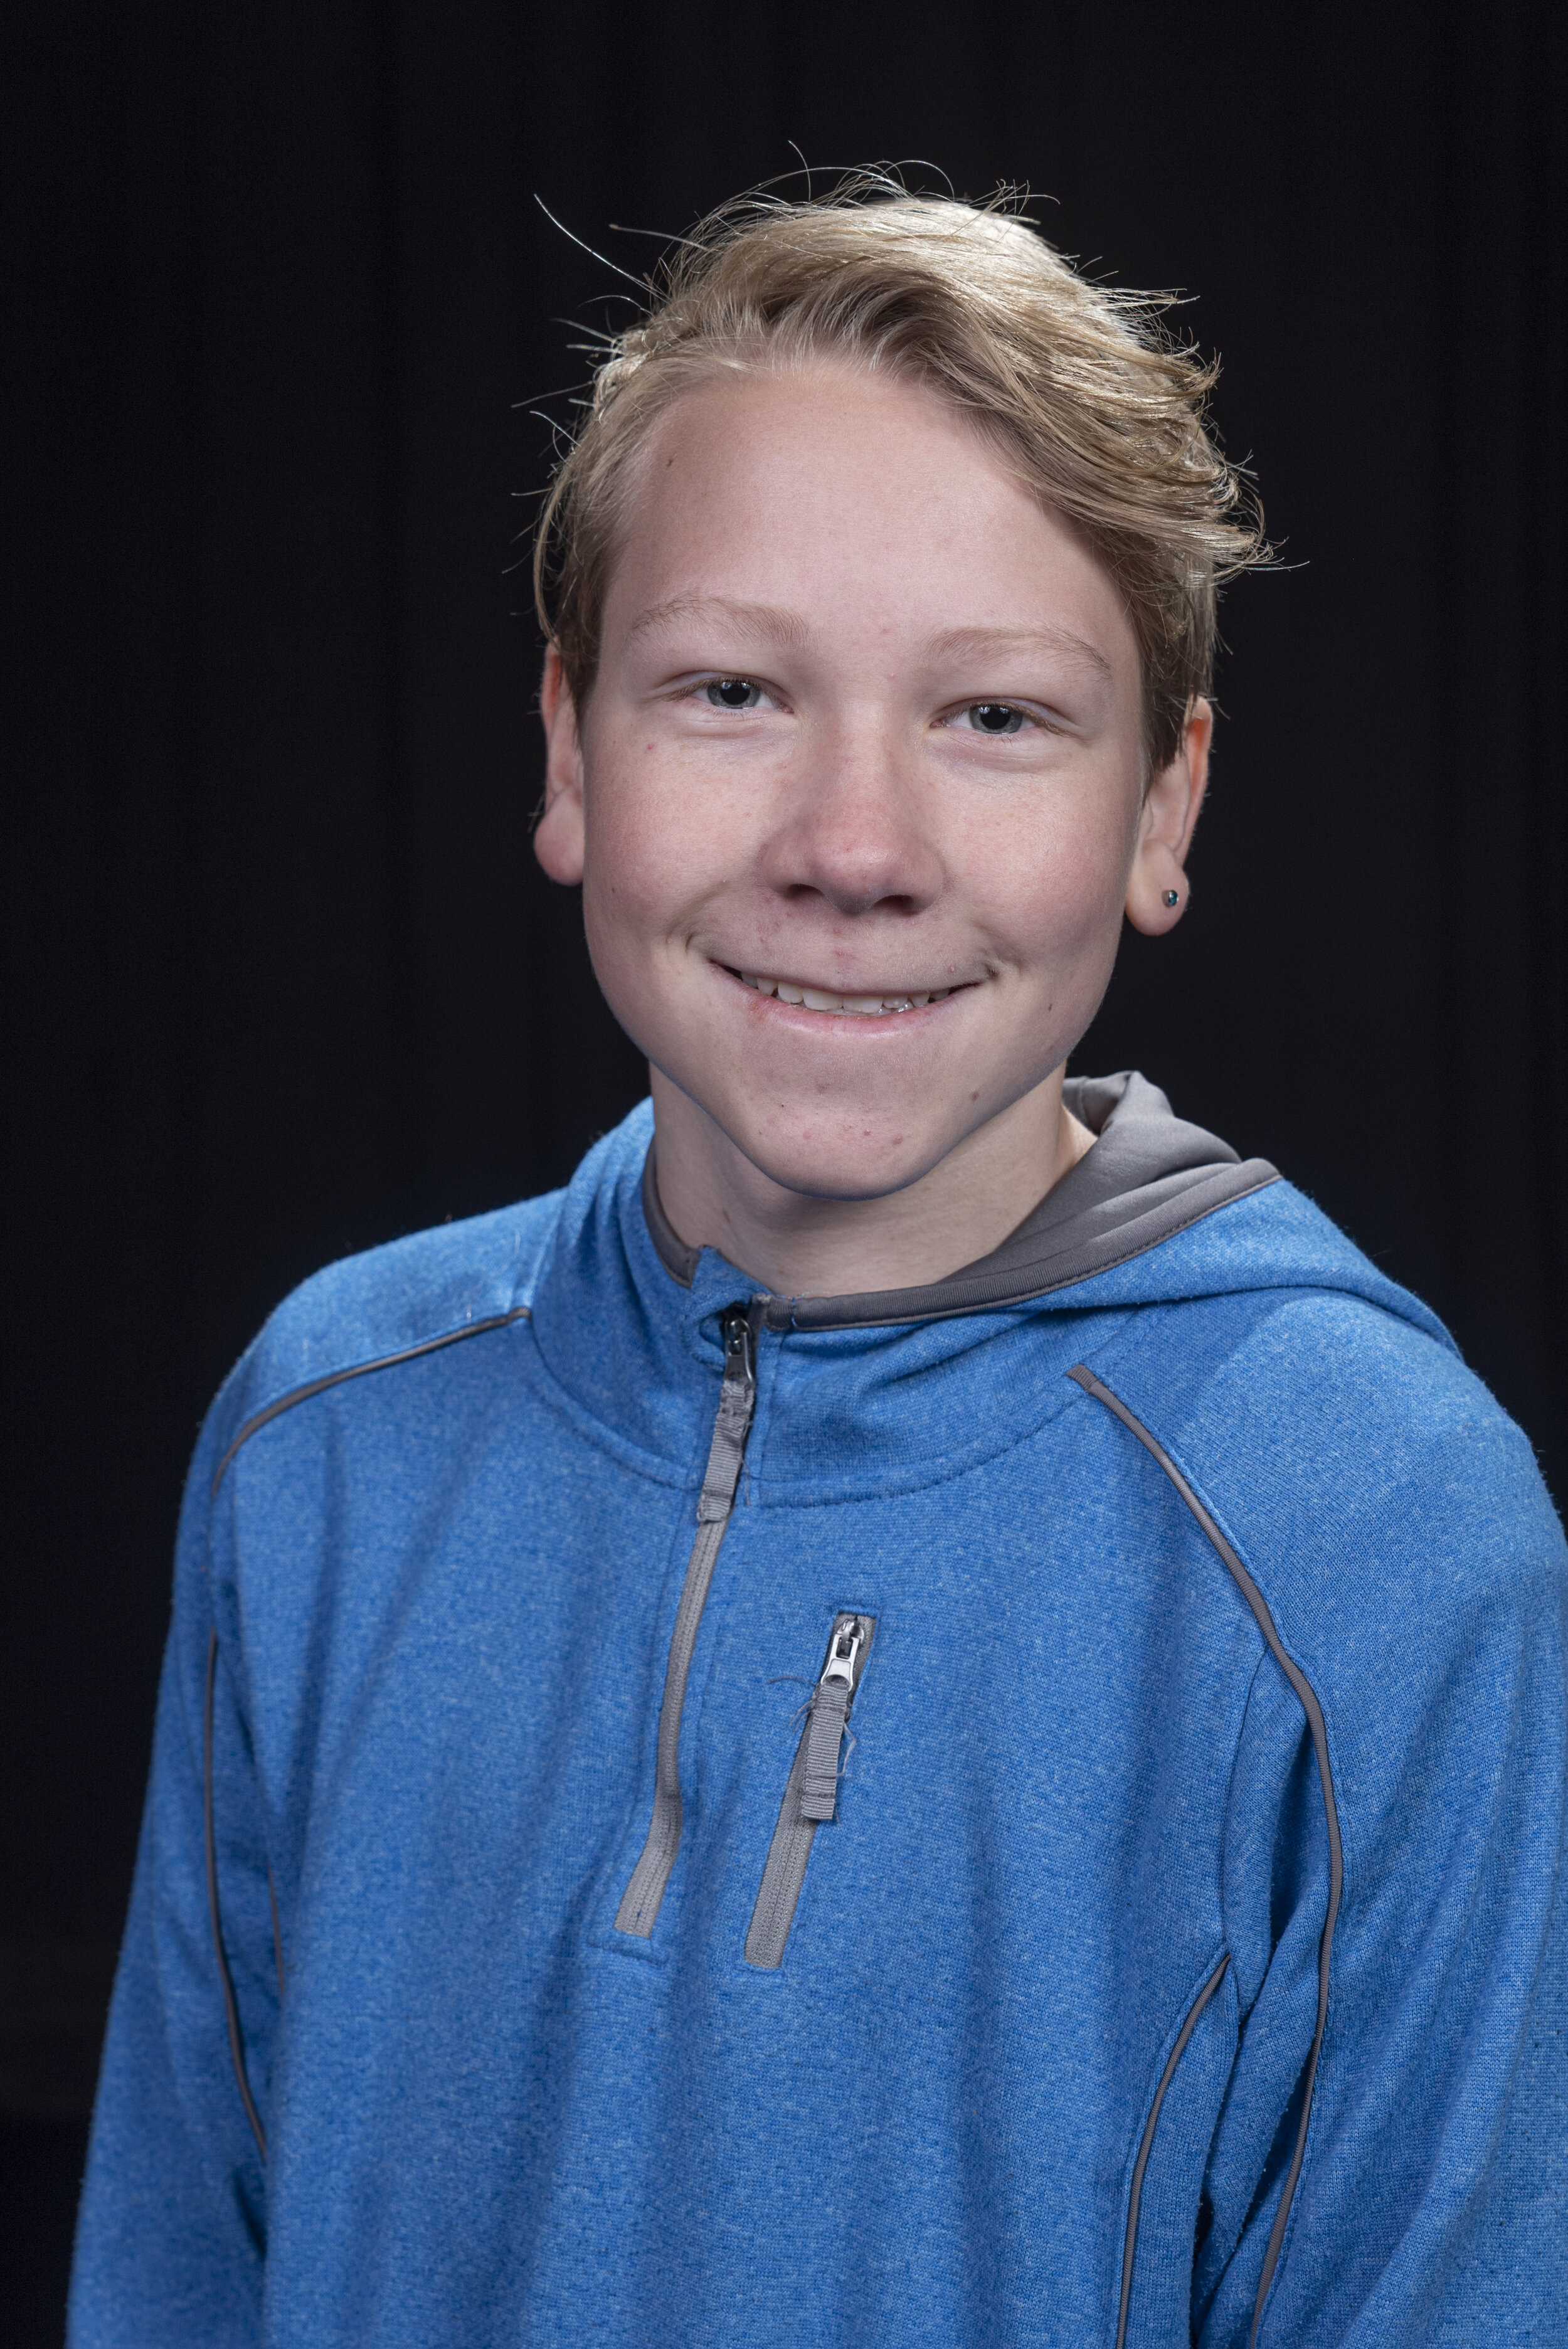 Nick - 14 - First time onstage - Nick is a student at Crusoe College and is 14 years old. Nick joined the cast a soldier, dancer and young man, all non-speaking roles. He learnt complicated dances and portrayed each role with confidence and calm maturity.by Wendy Collishaw, Director